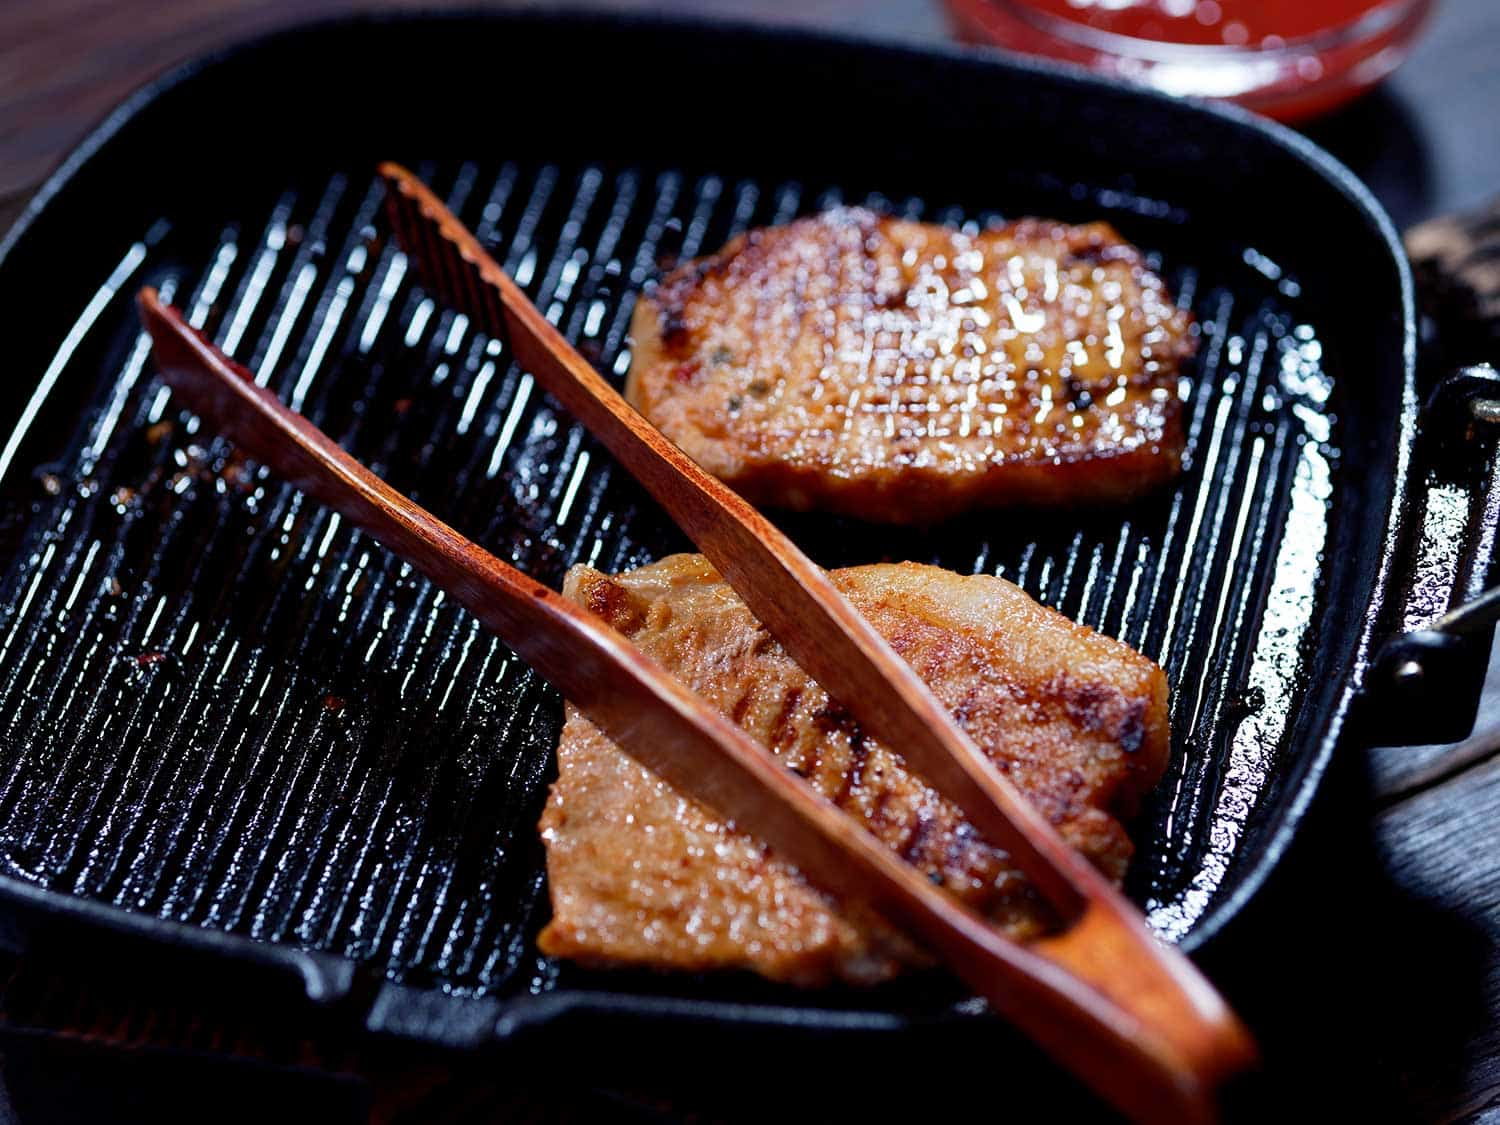 Grilled pork chops in the grill pan on the table